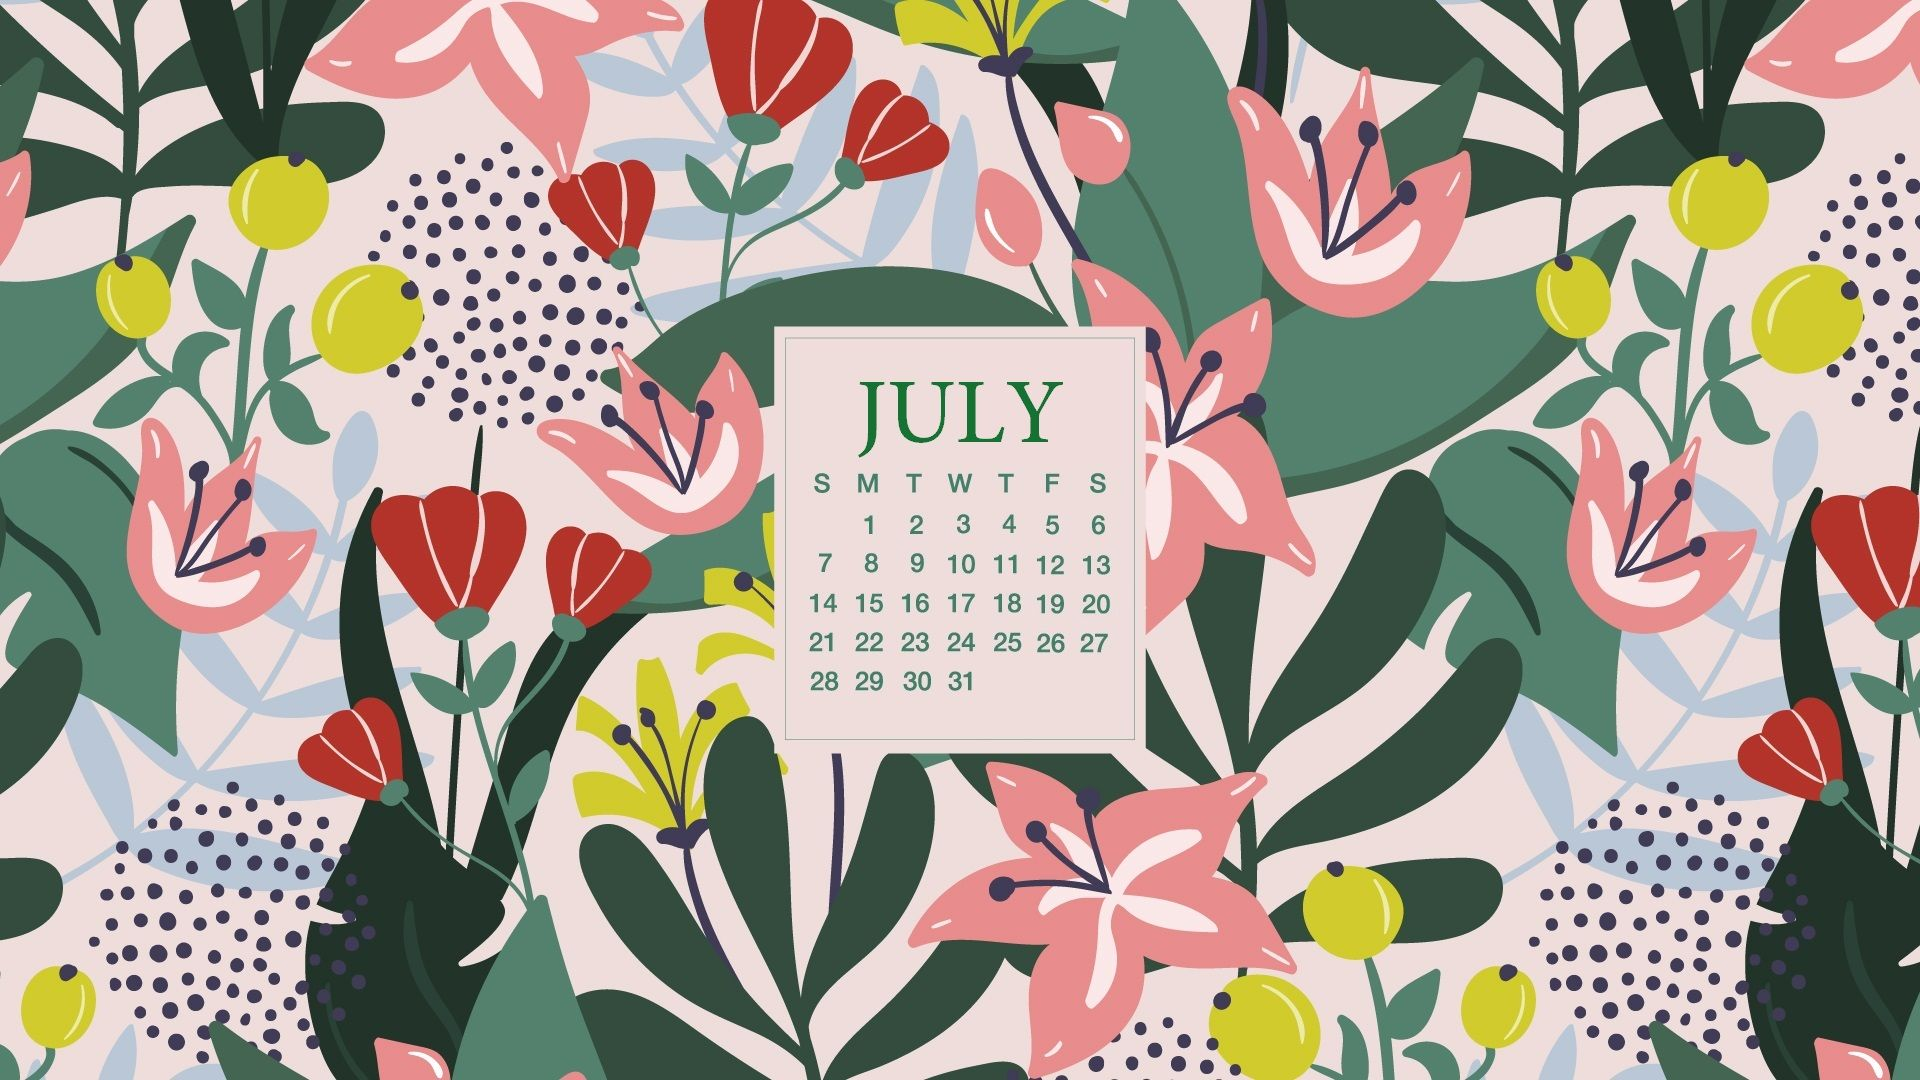 Download July 2019 Desktop Wallpaper Desktop Wallpaper Calendar Calendar Wallpaper Calendar Background